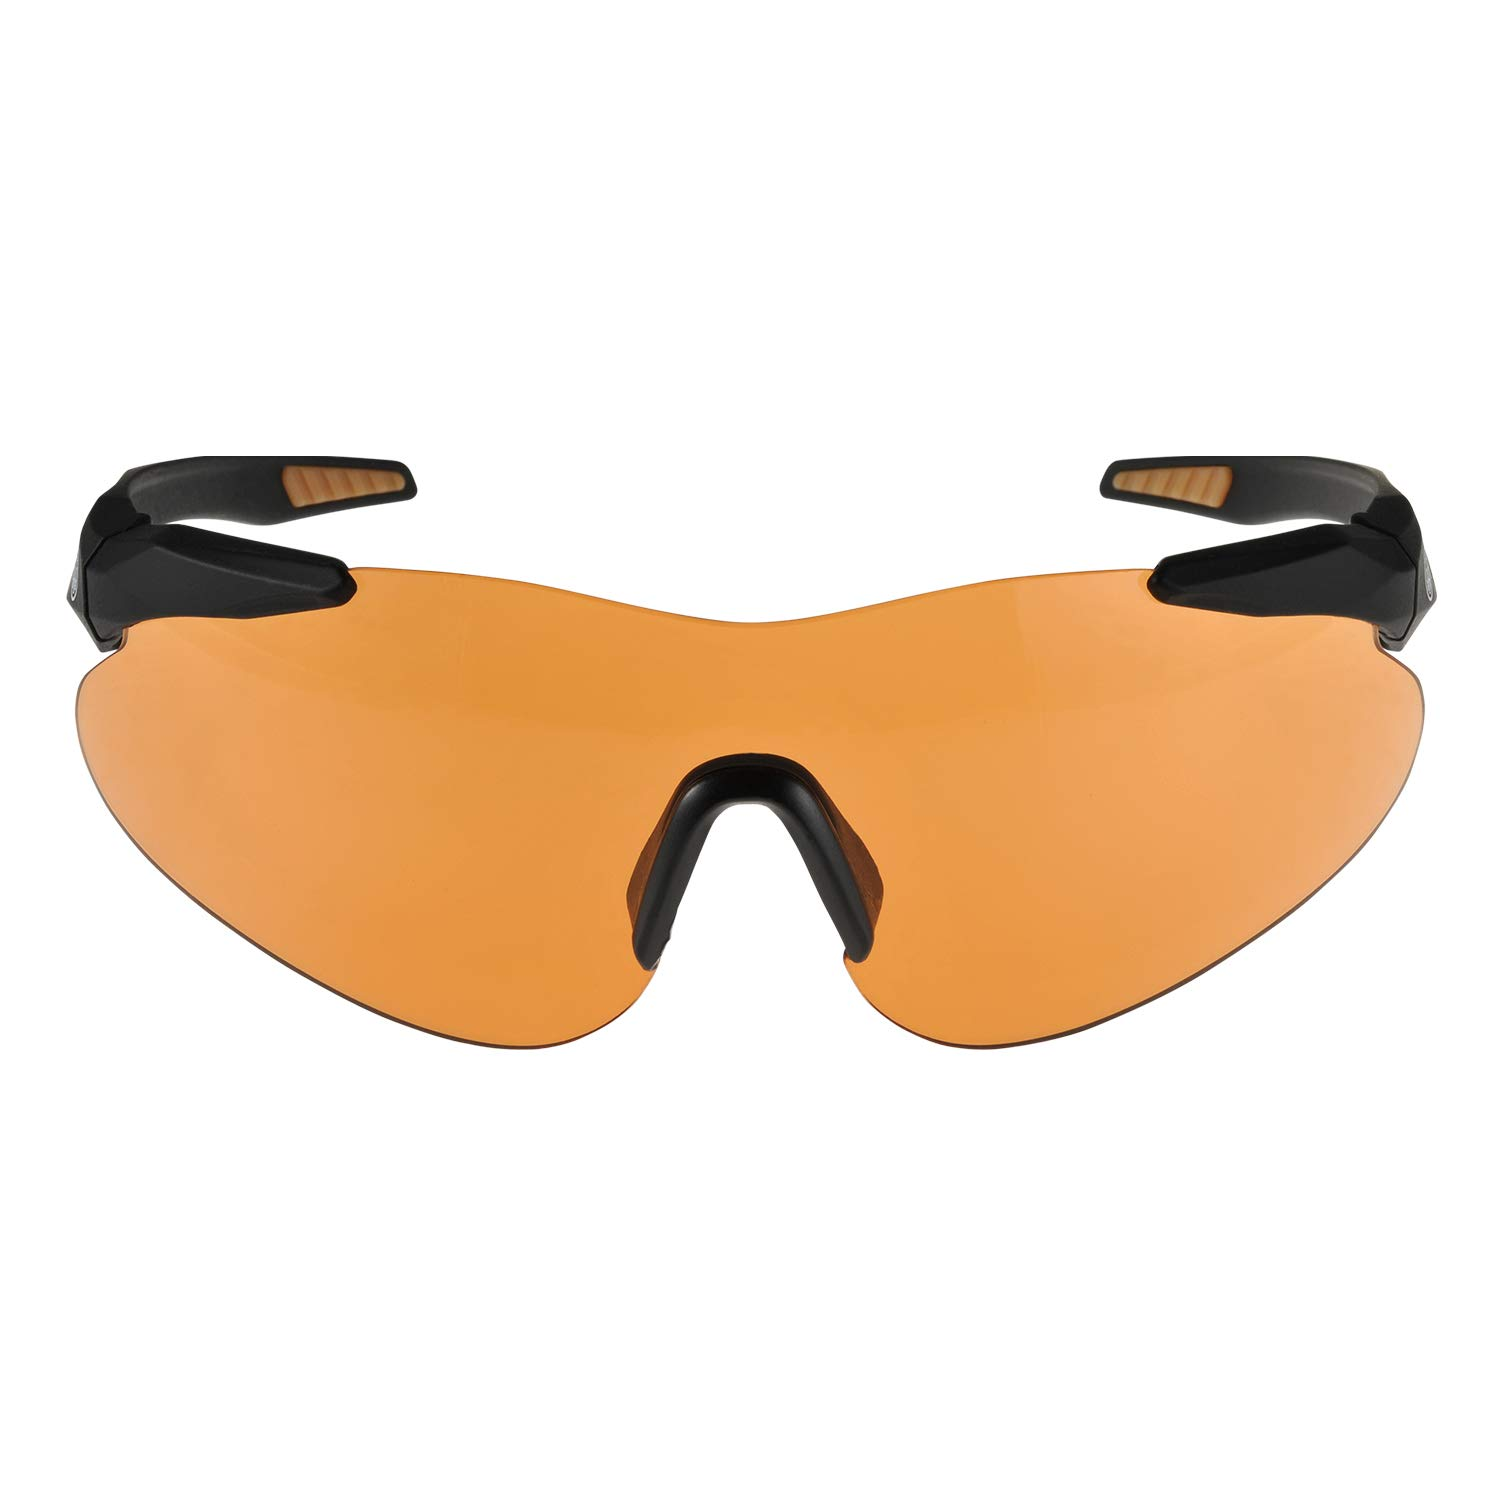 Beretta Shooting Glasses with Policarbonate Injected Lens, Orange by Beretta